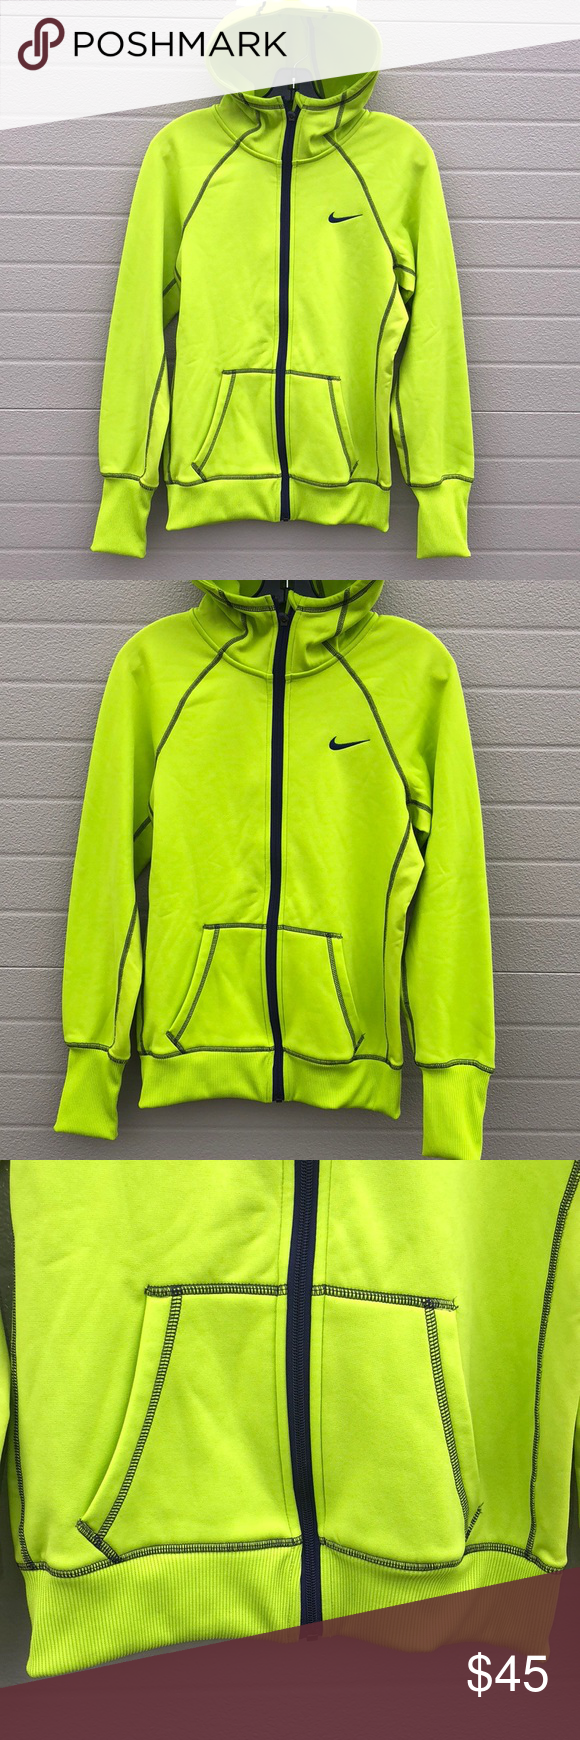 Nike lime green neon full zip hoodie jacket small Nike lime